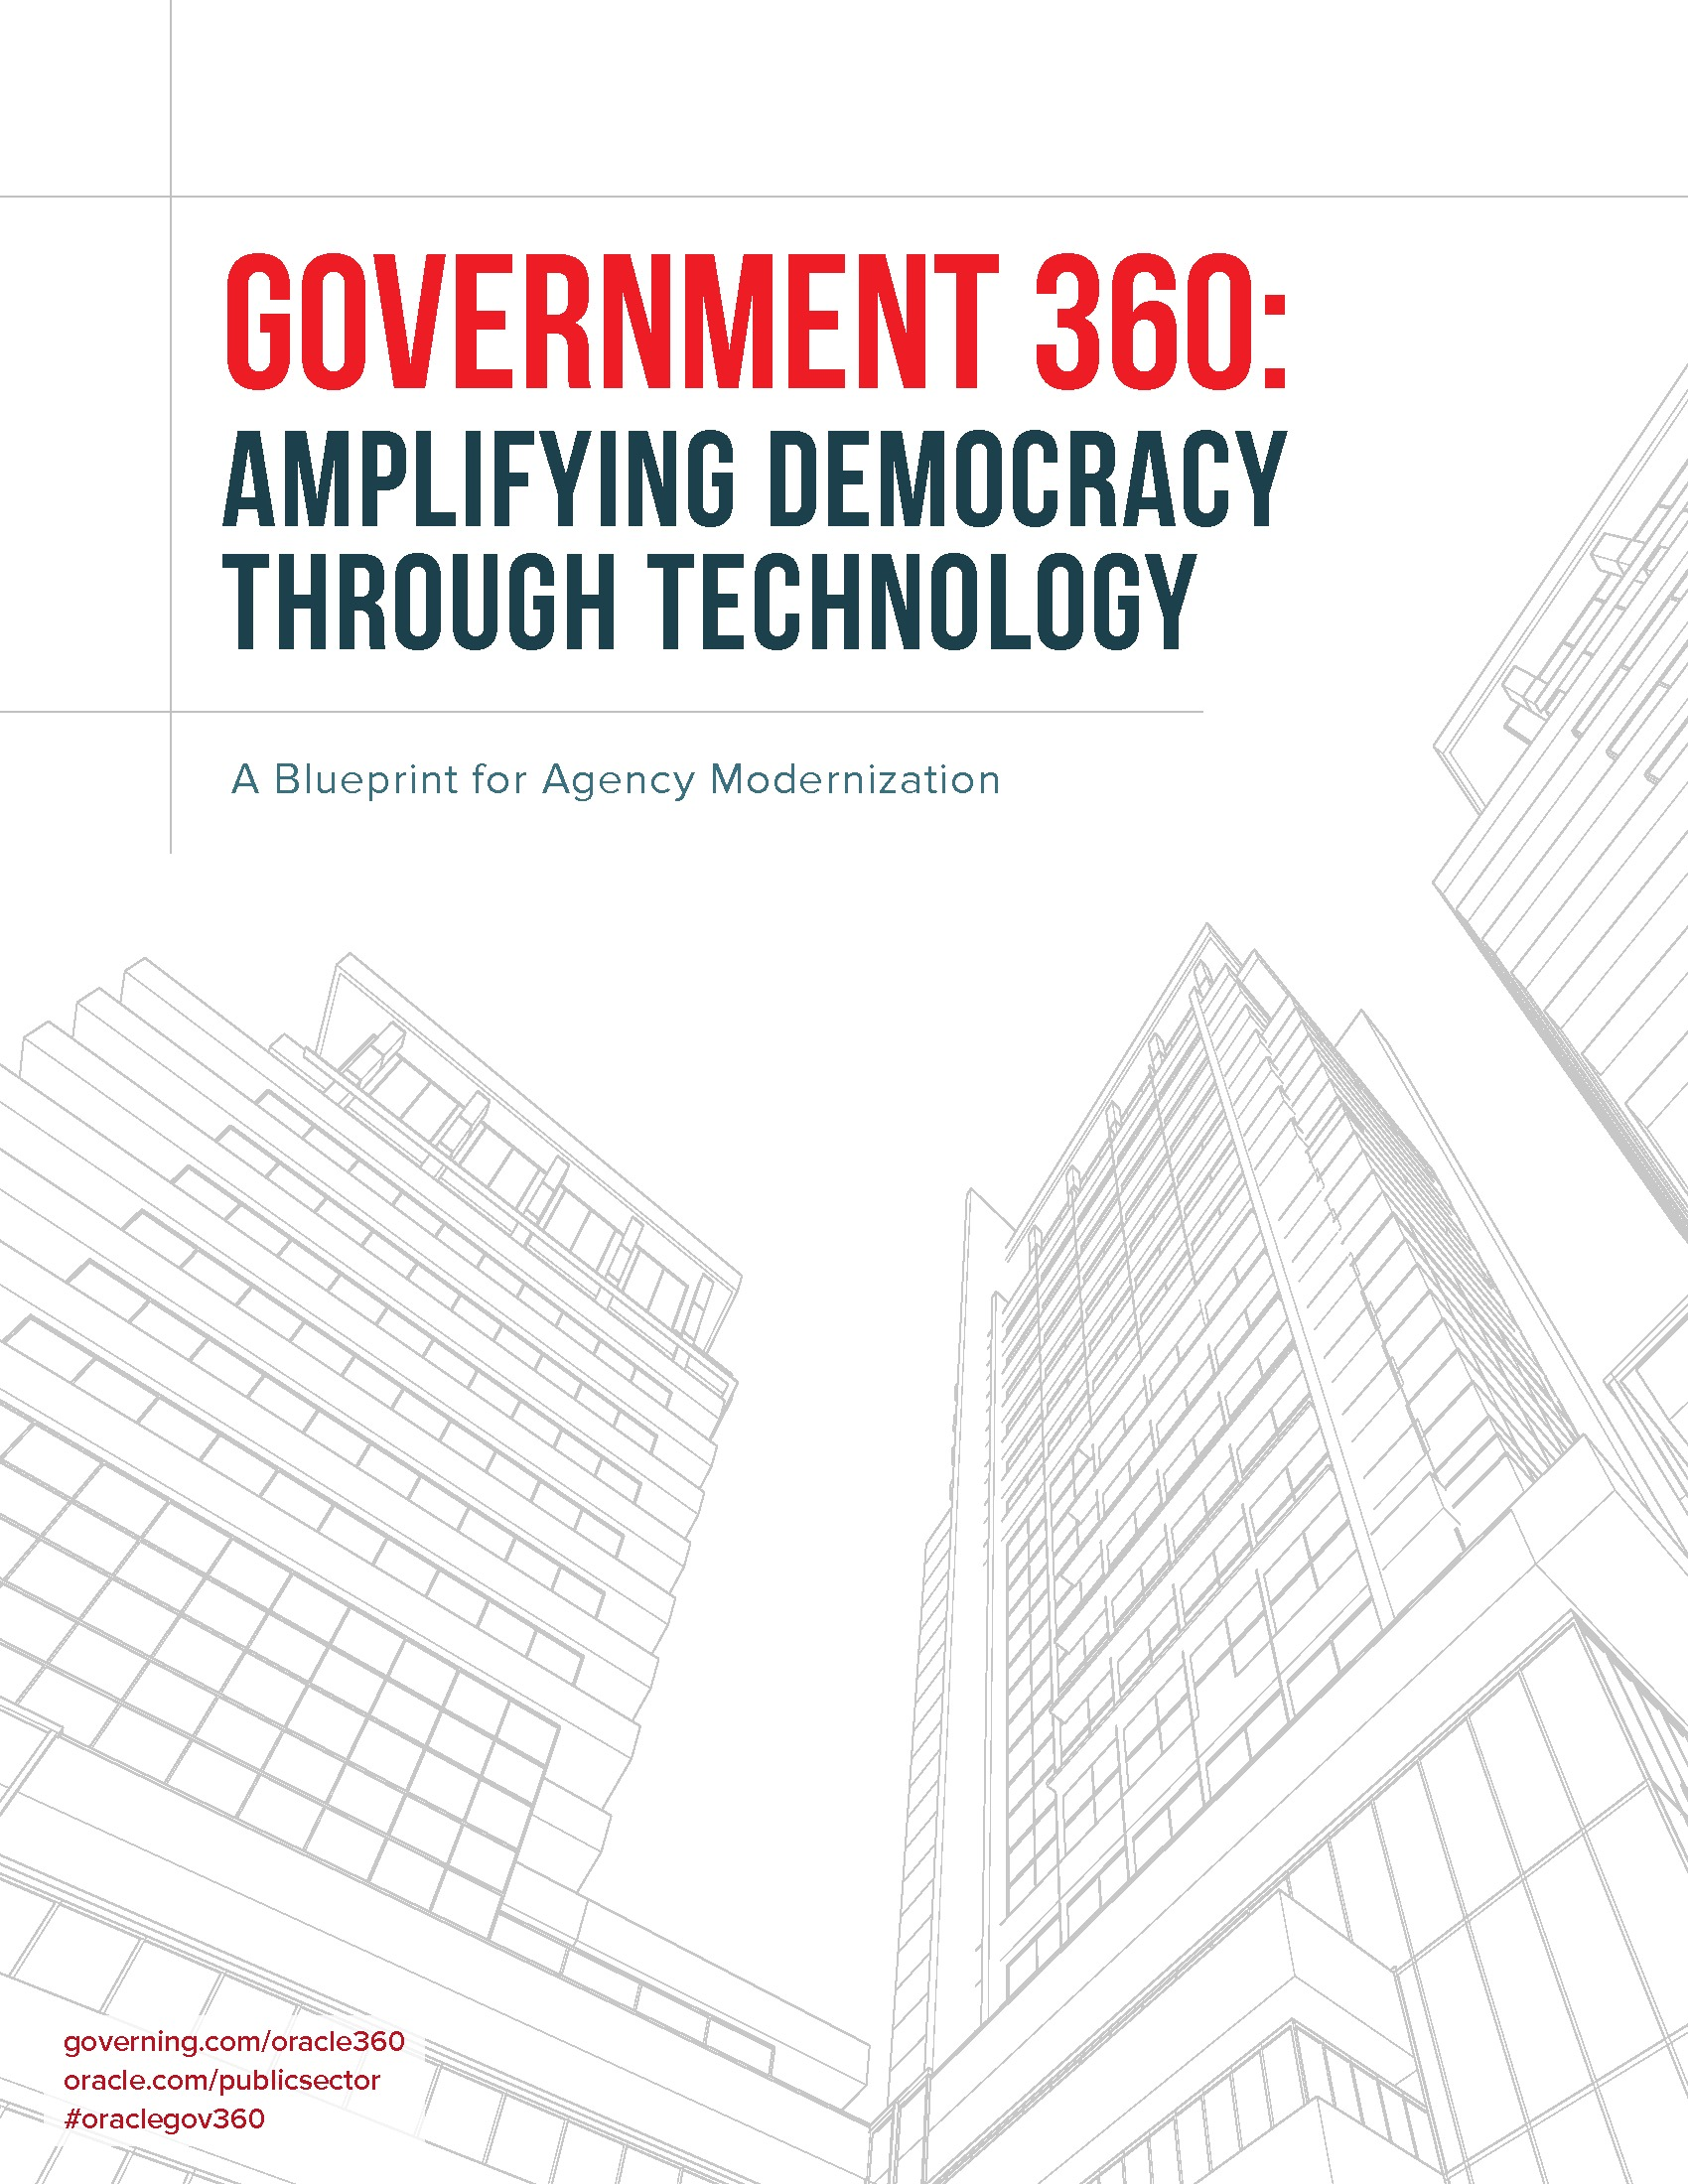 Government 360: Amplifying Democracy Through Technology